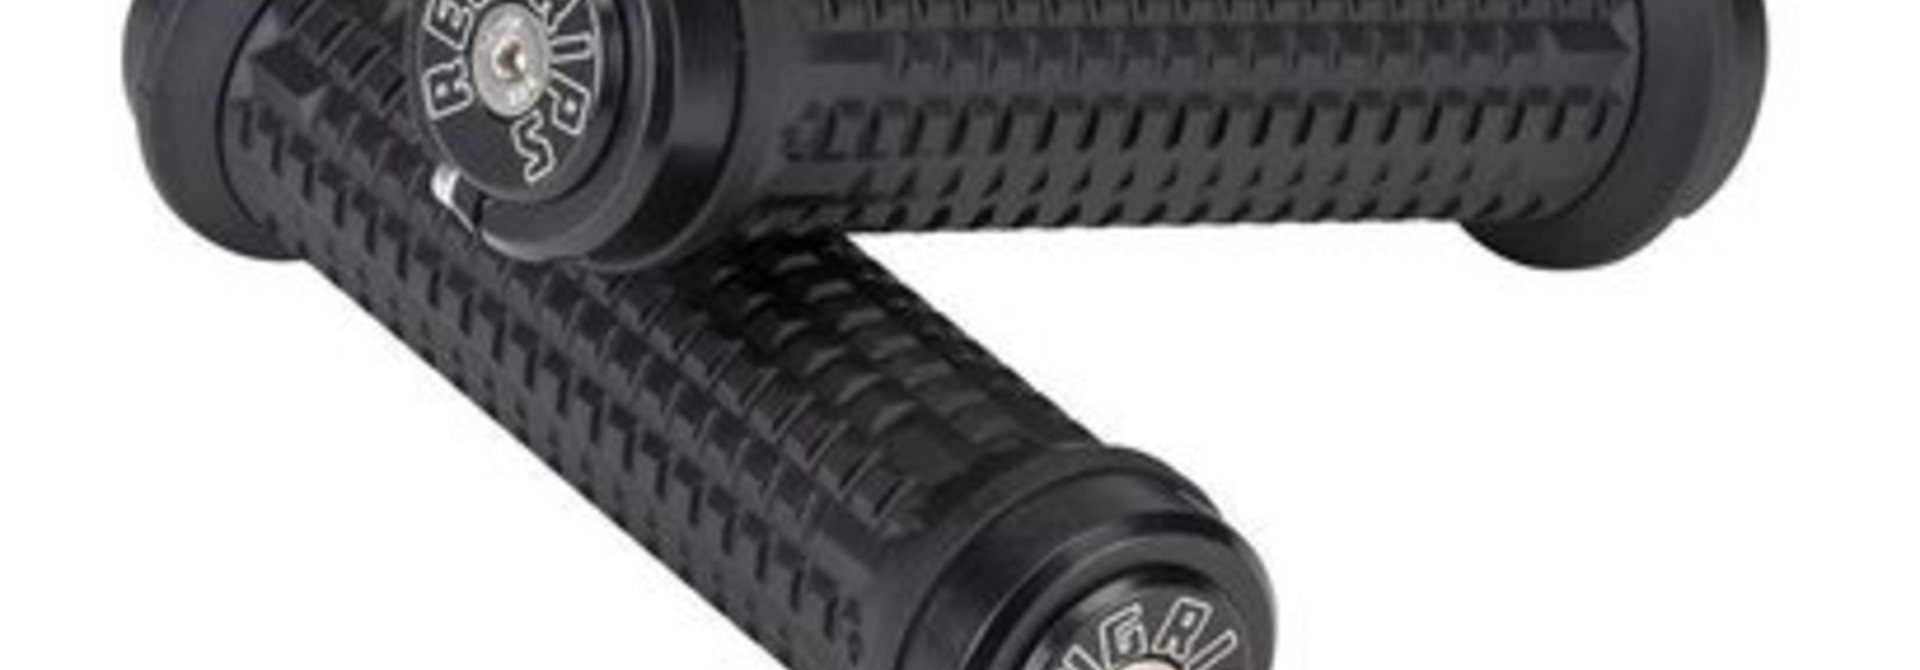 RevGrips Race Series Grip System Medium(32.5mm)